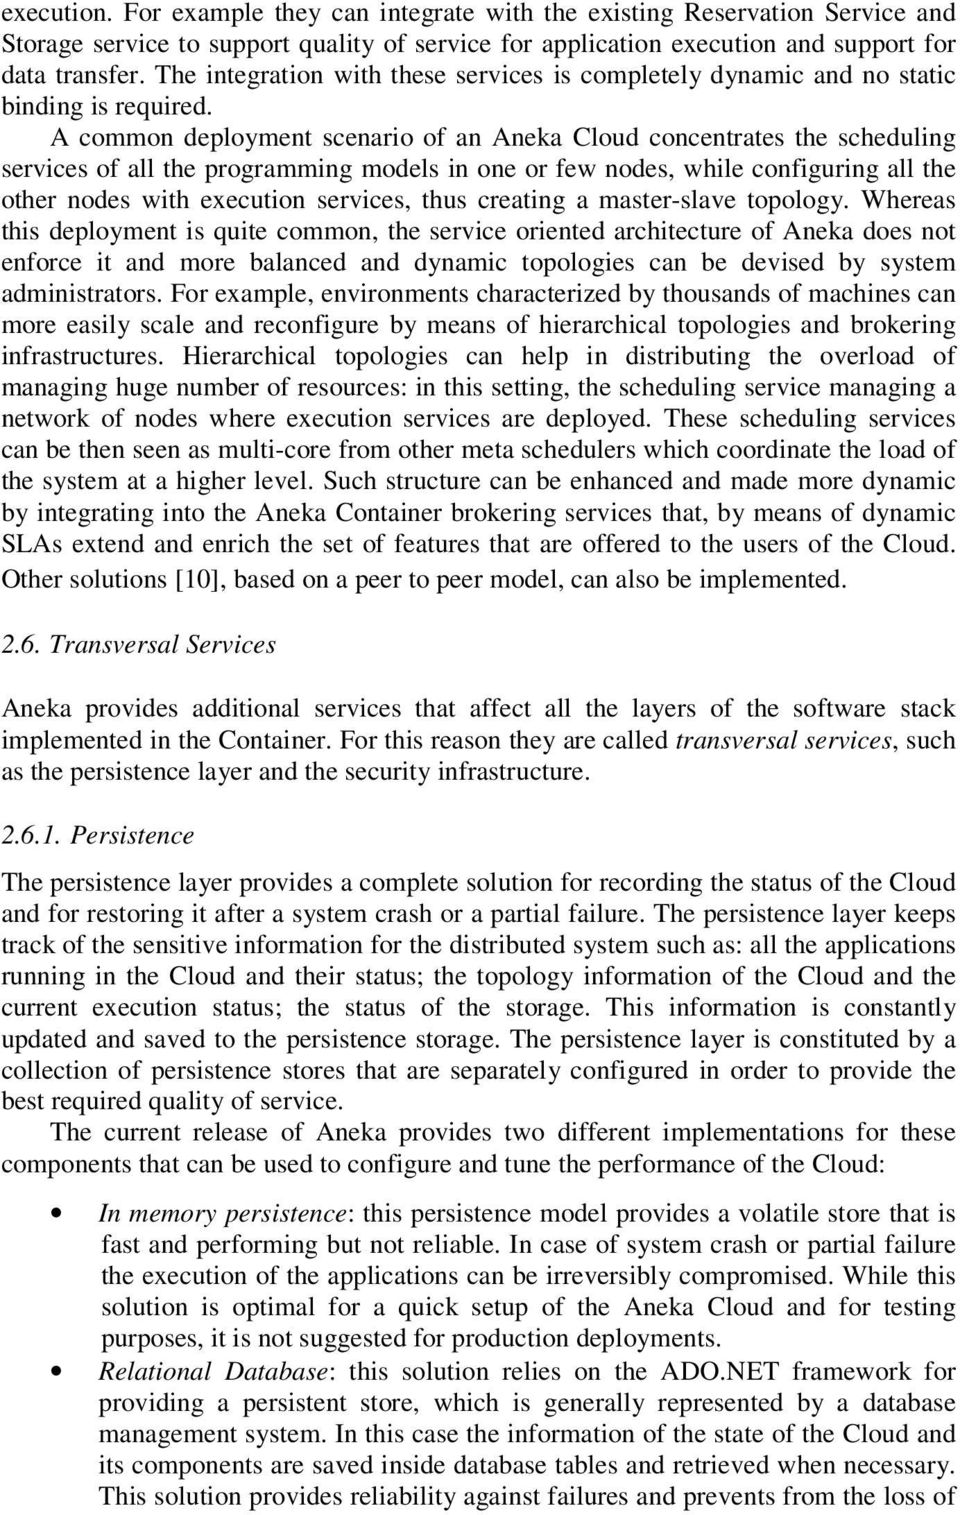 A common deployment scenario of an Aneka Cloud concentrates the scheduling services of all the programming models in one or few nodes, while configuring all the other nodes with execution services,